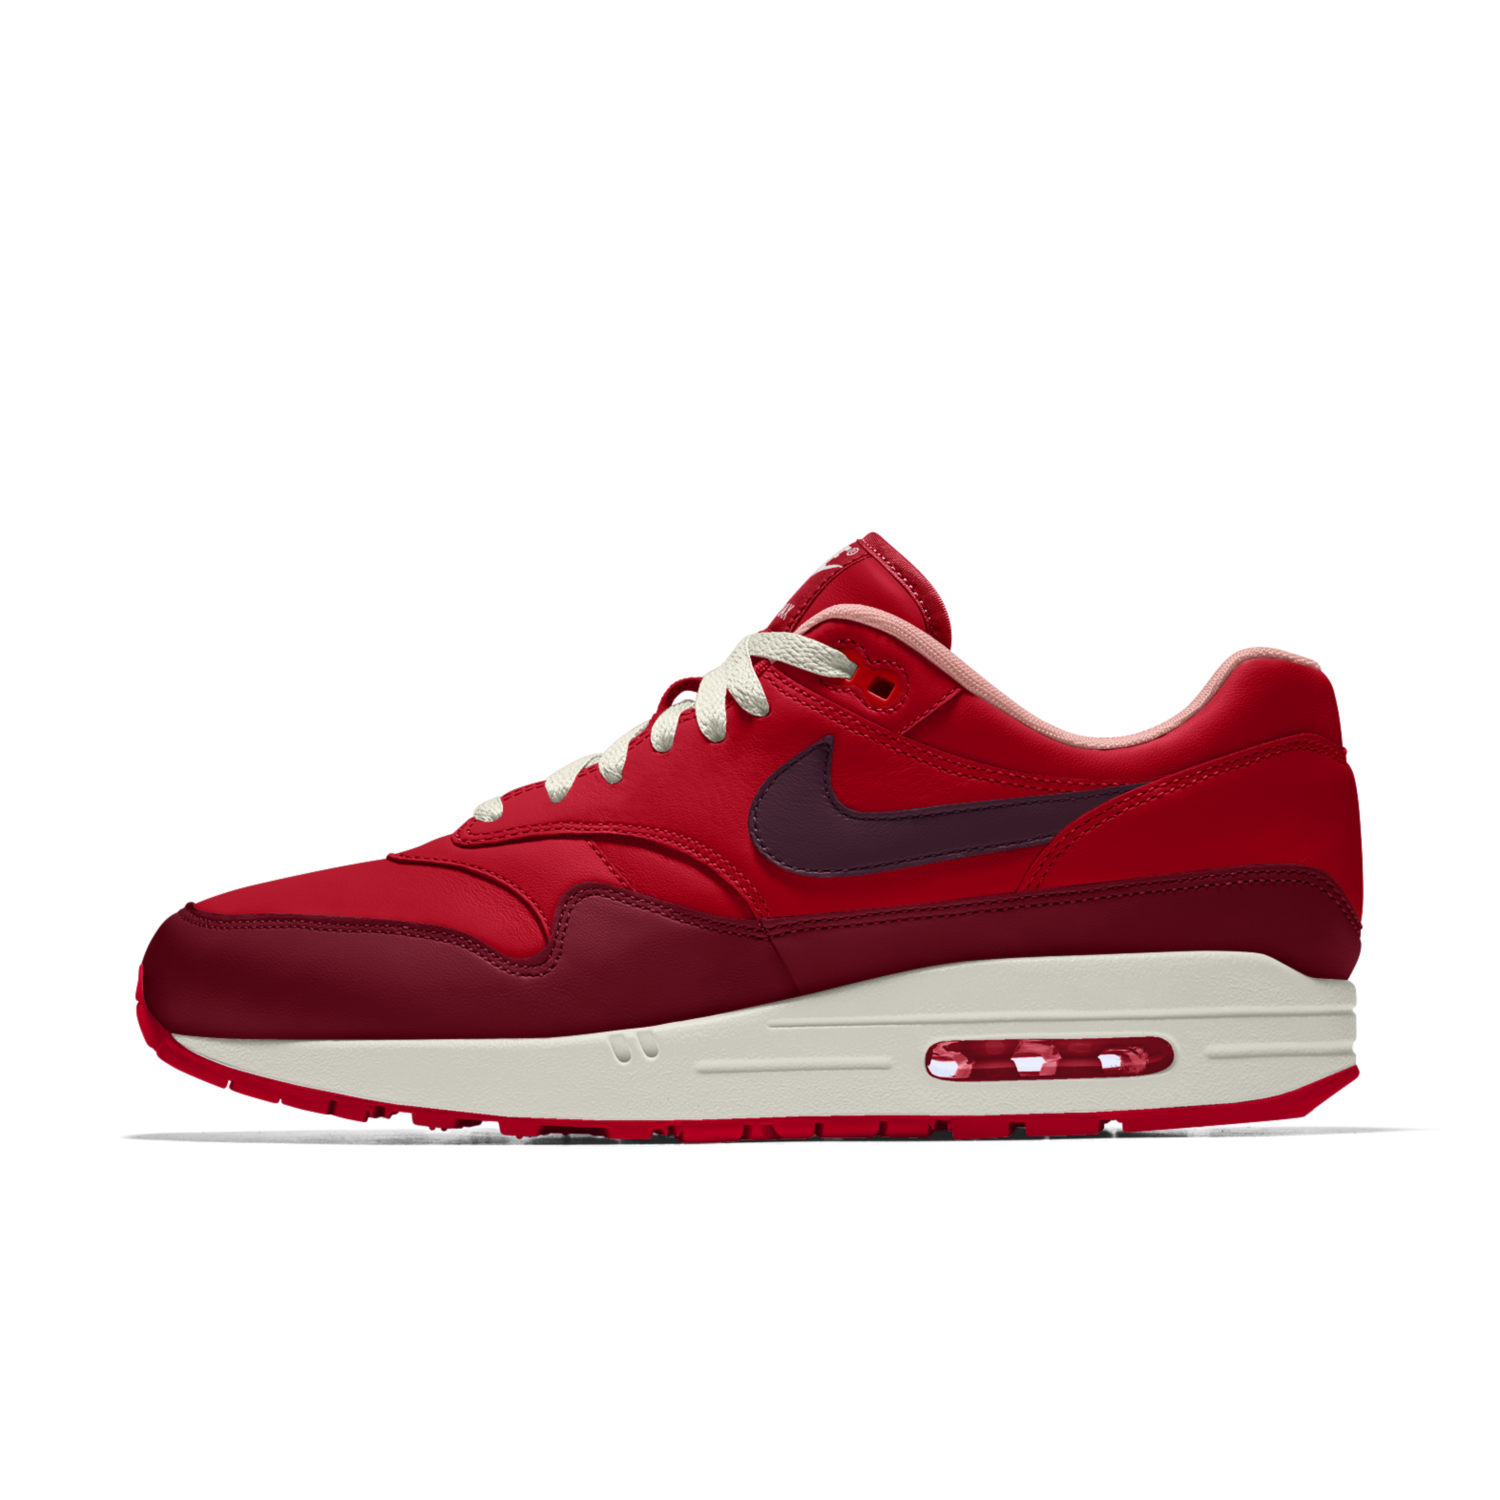 Pin by Renee Flowers on 2bai (With images) Air max, Nike